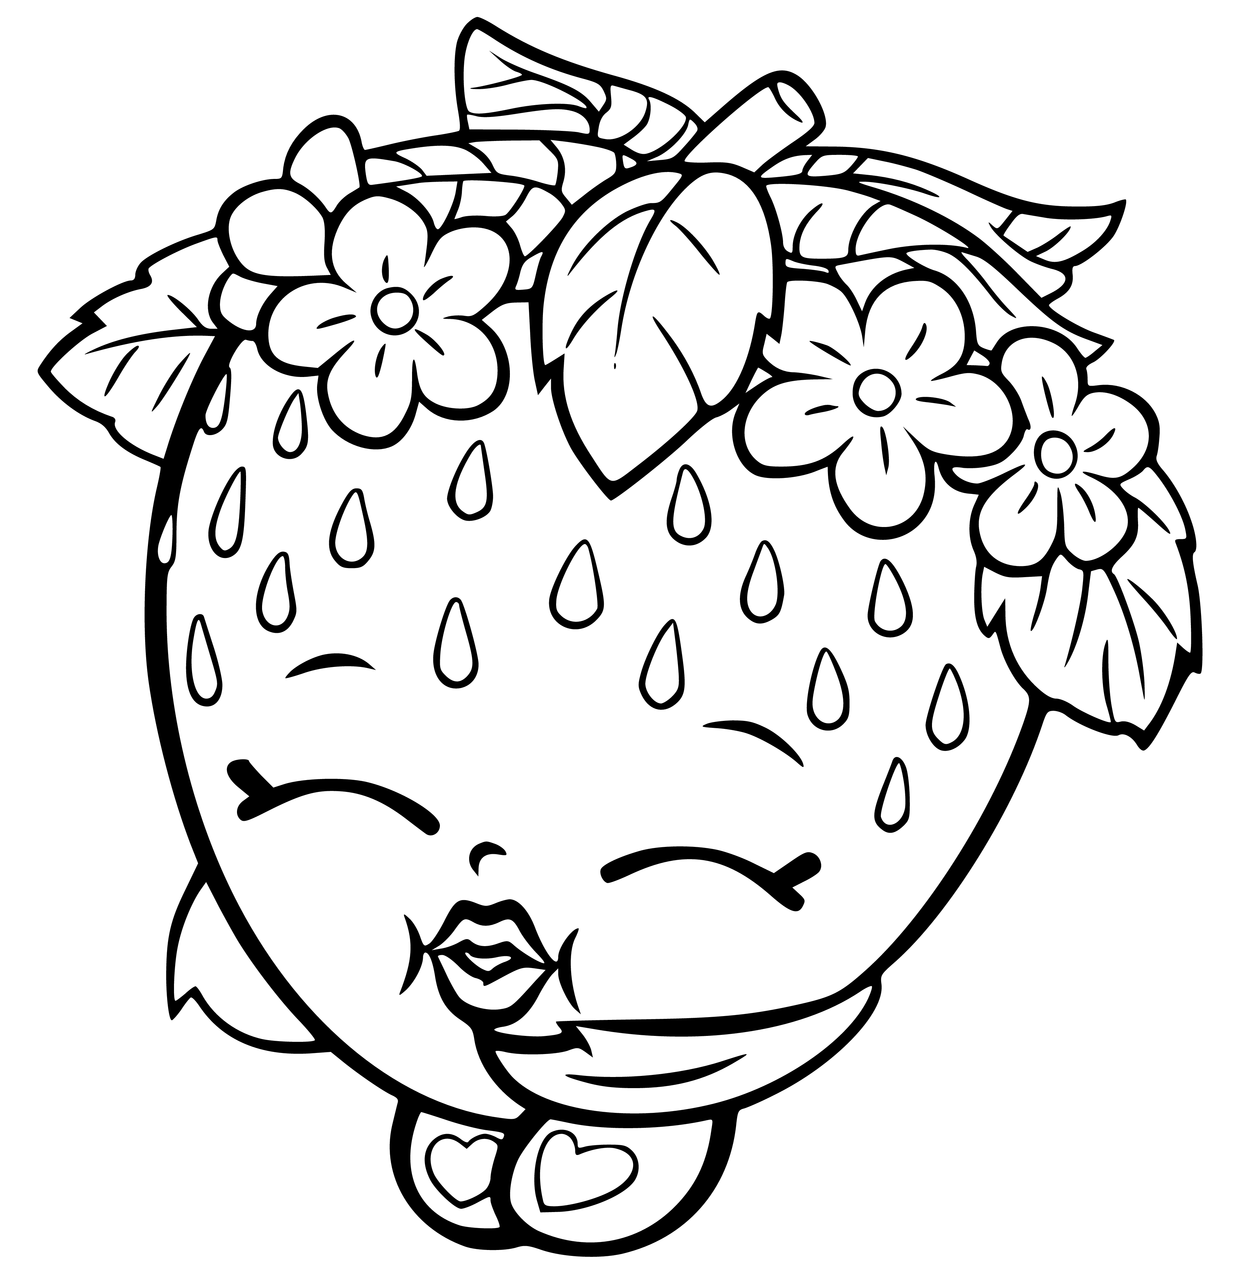 Shopkins coloring pages best coloring pages for kids for Ten coloring page